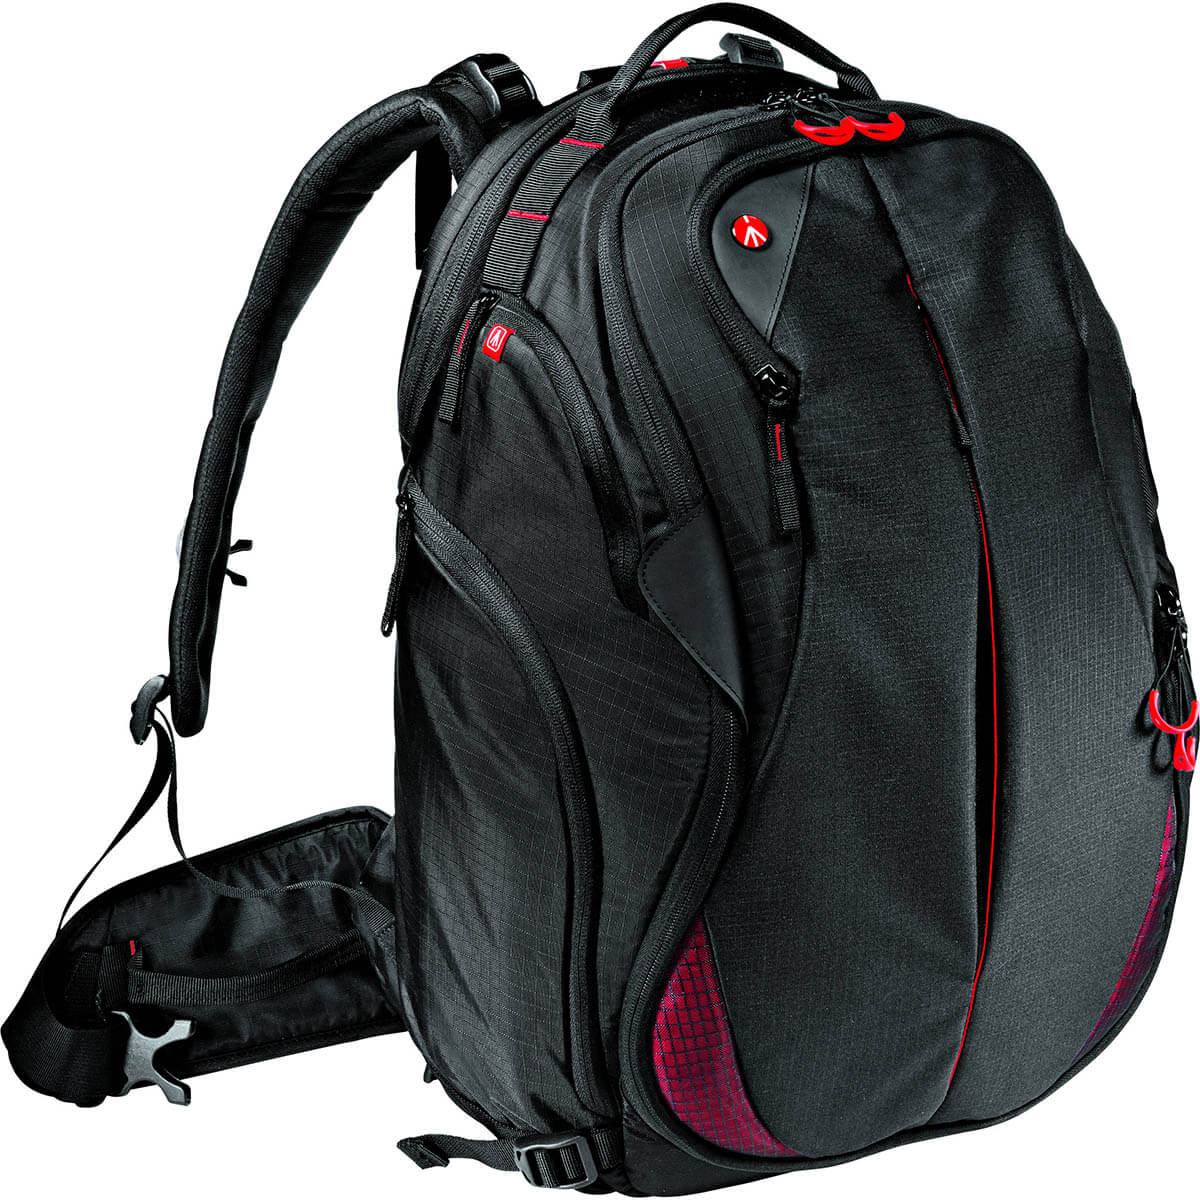 Best Camera Backpacks for Travel - Manfrotto Bumblebee 230